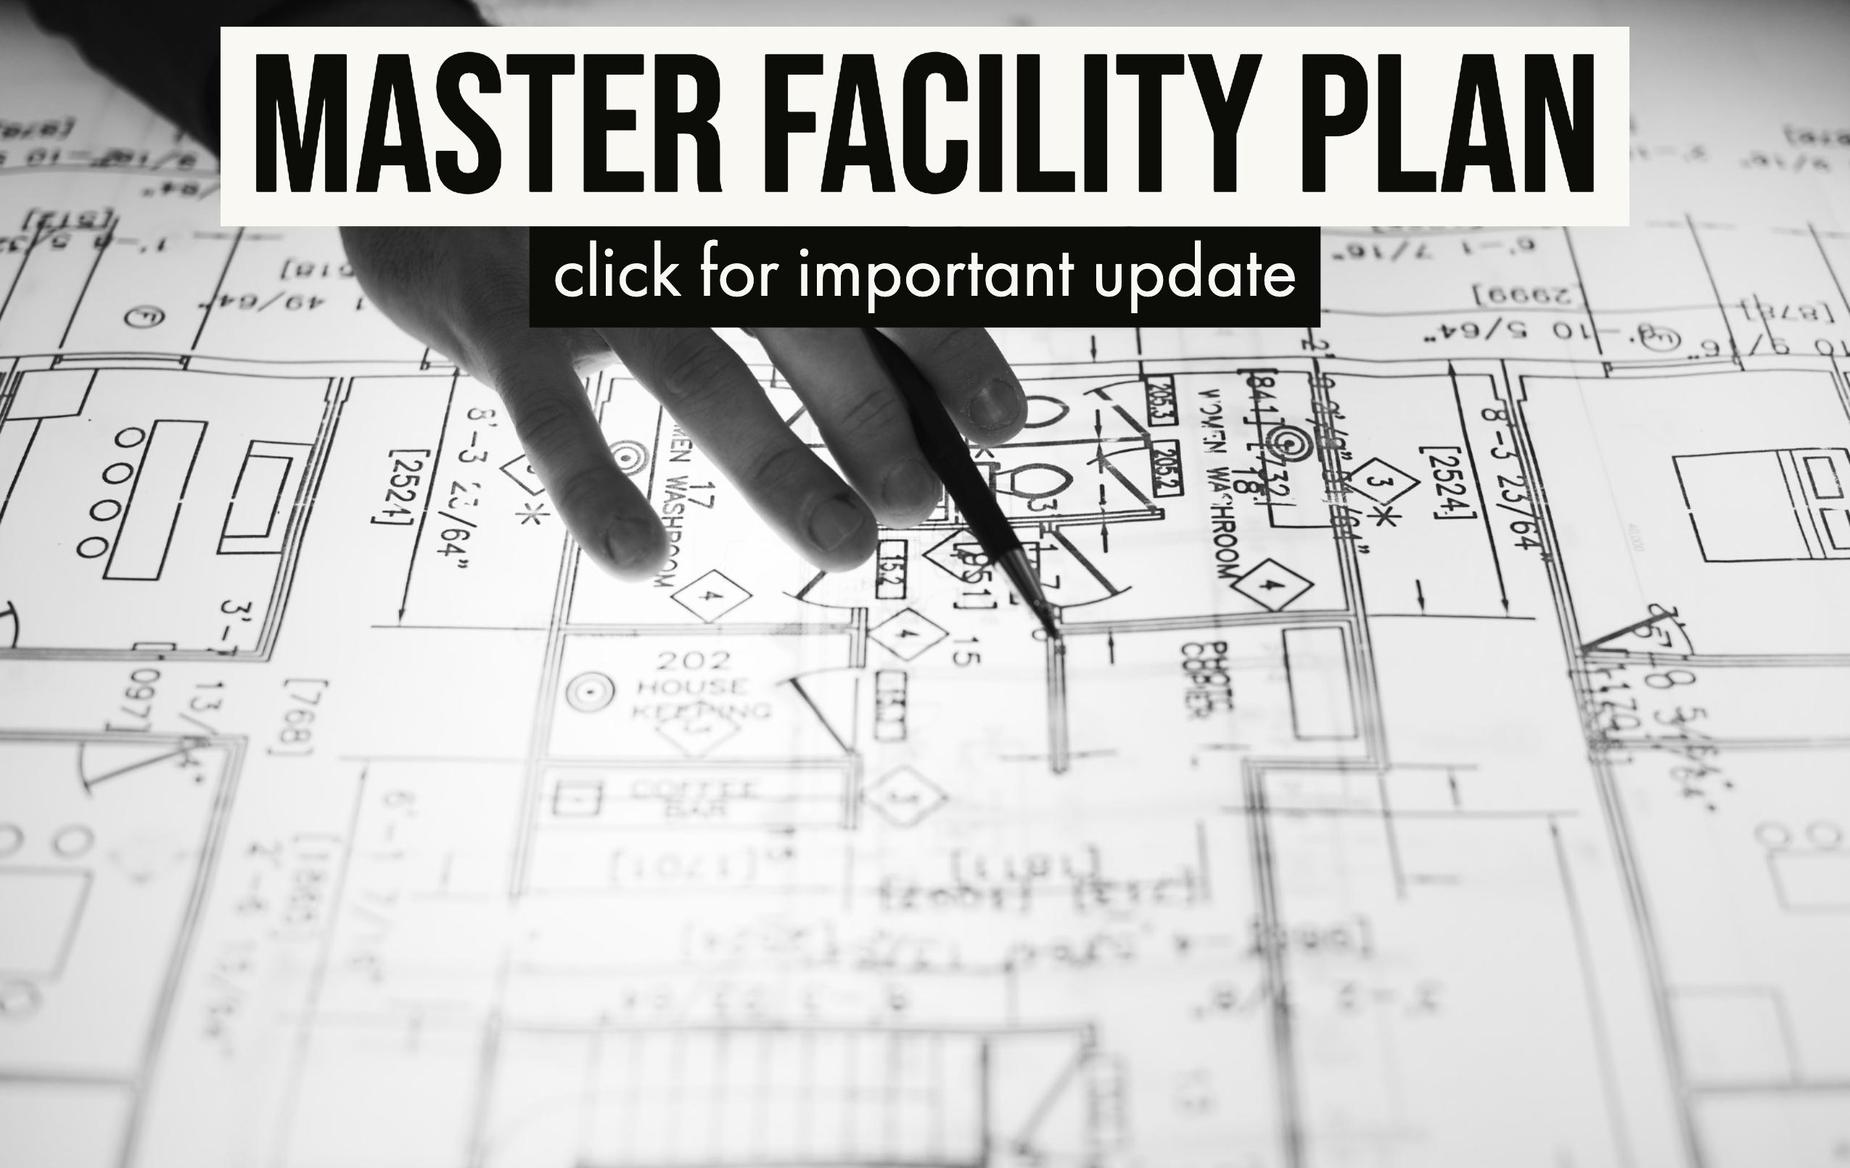 Master Facility Plan Update